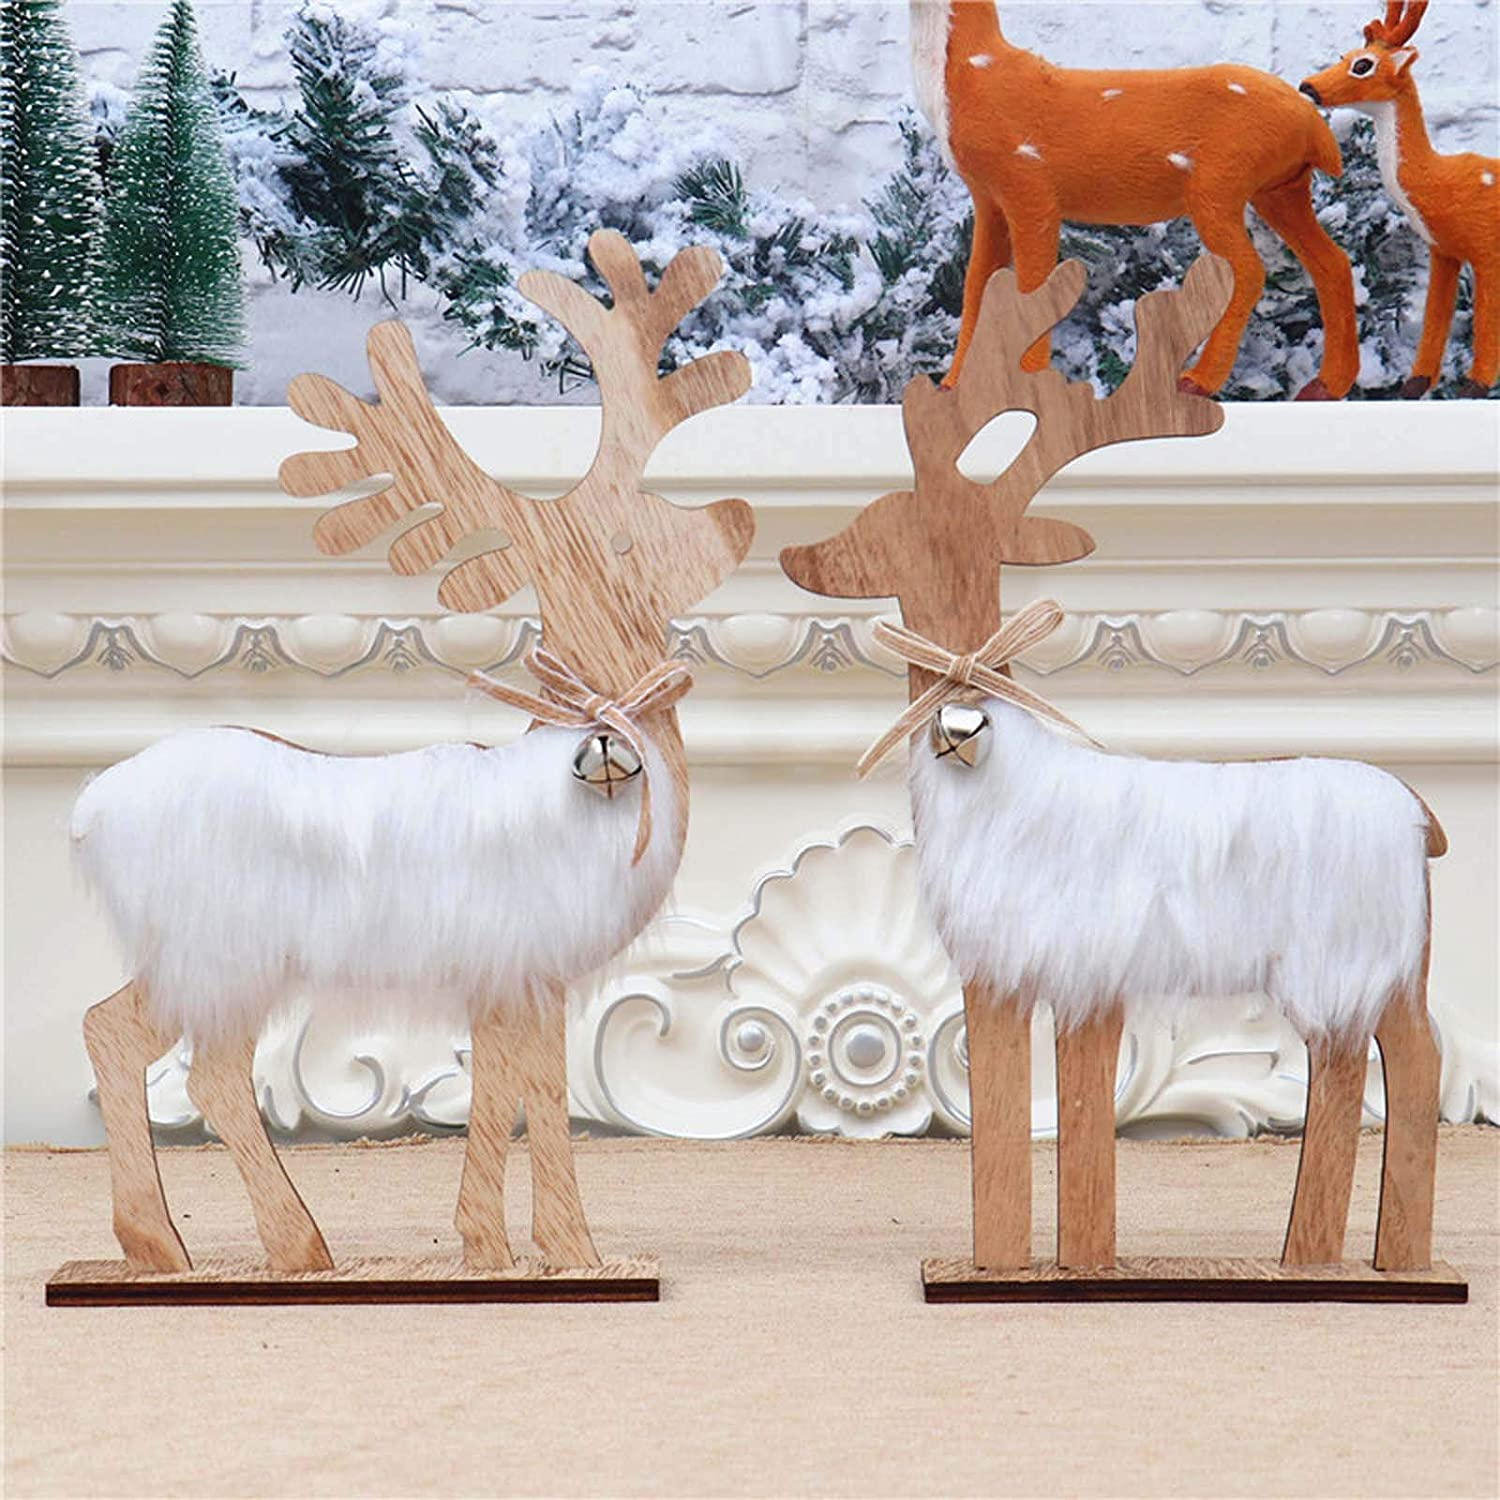 A Couple of Elk Christmas Elk Ornaments Log Material Elk with a Bell on The Neck Wooden Christmas Tree Desk Decoration Plush Simulation Deer Decor Festival Gifts Toy